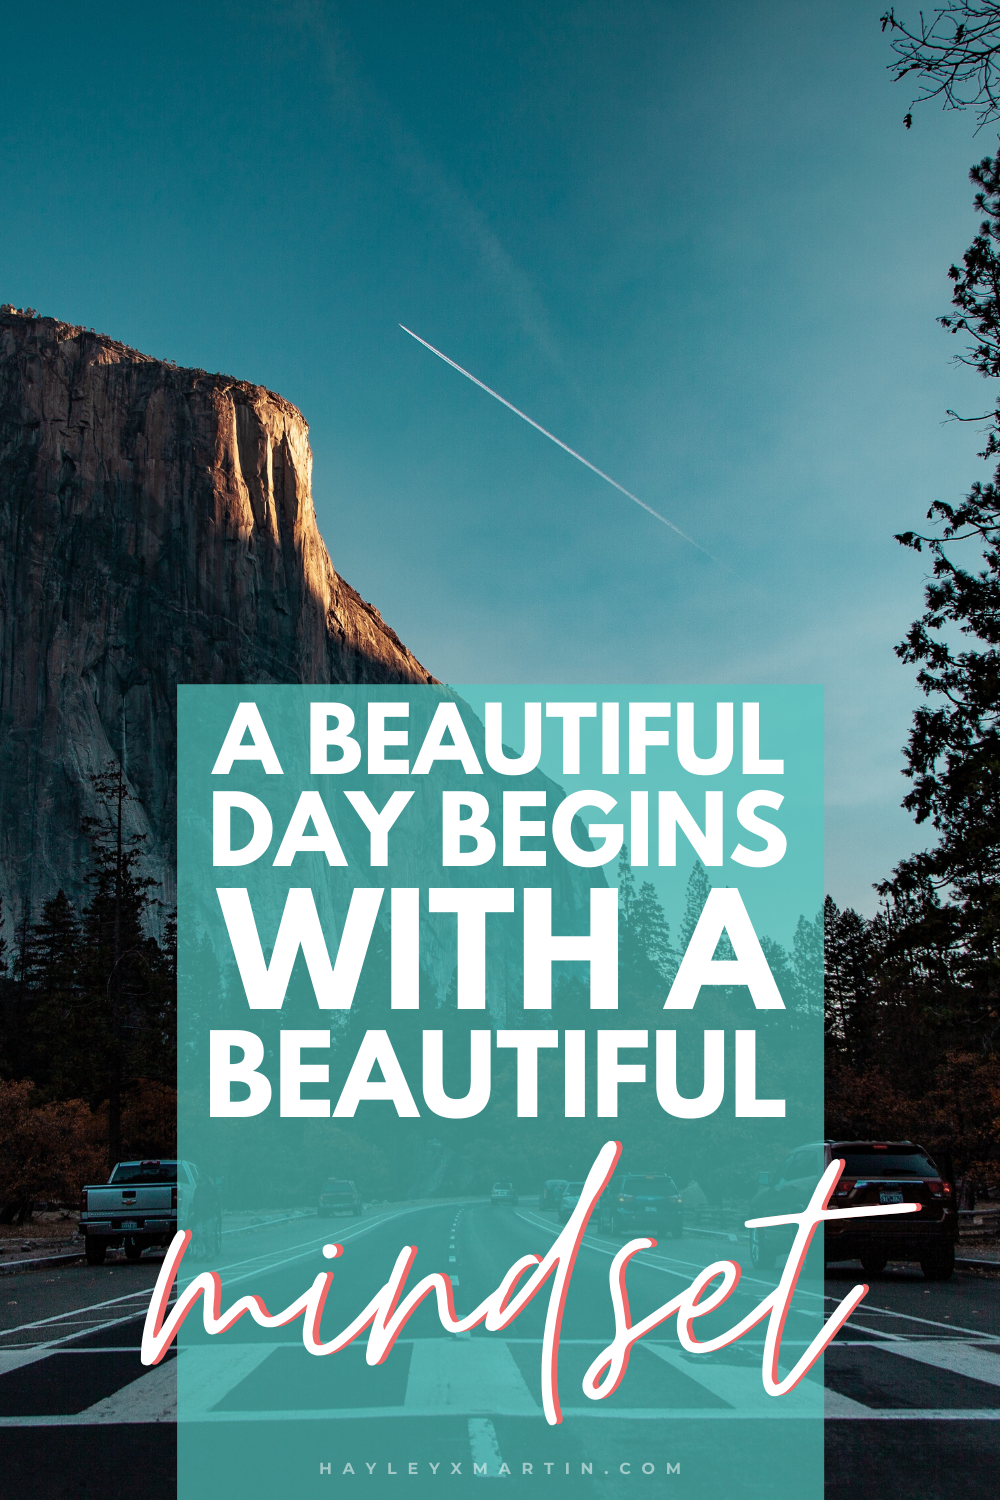 A BEAUTIFUL DAY BEGINS WITH A BEAUTIFUL MINDSET | HAYLEYXMARTIN